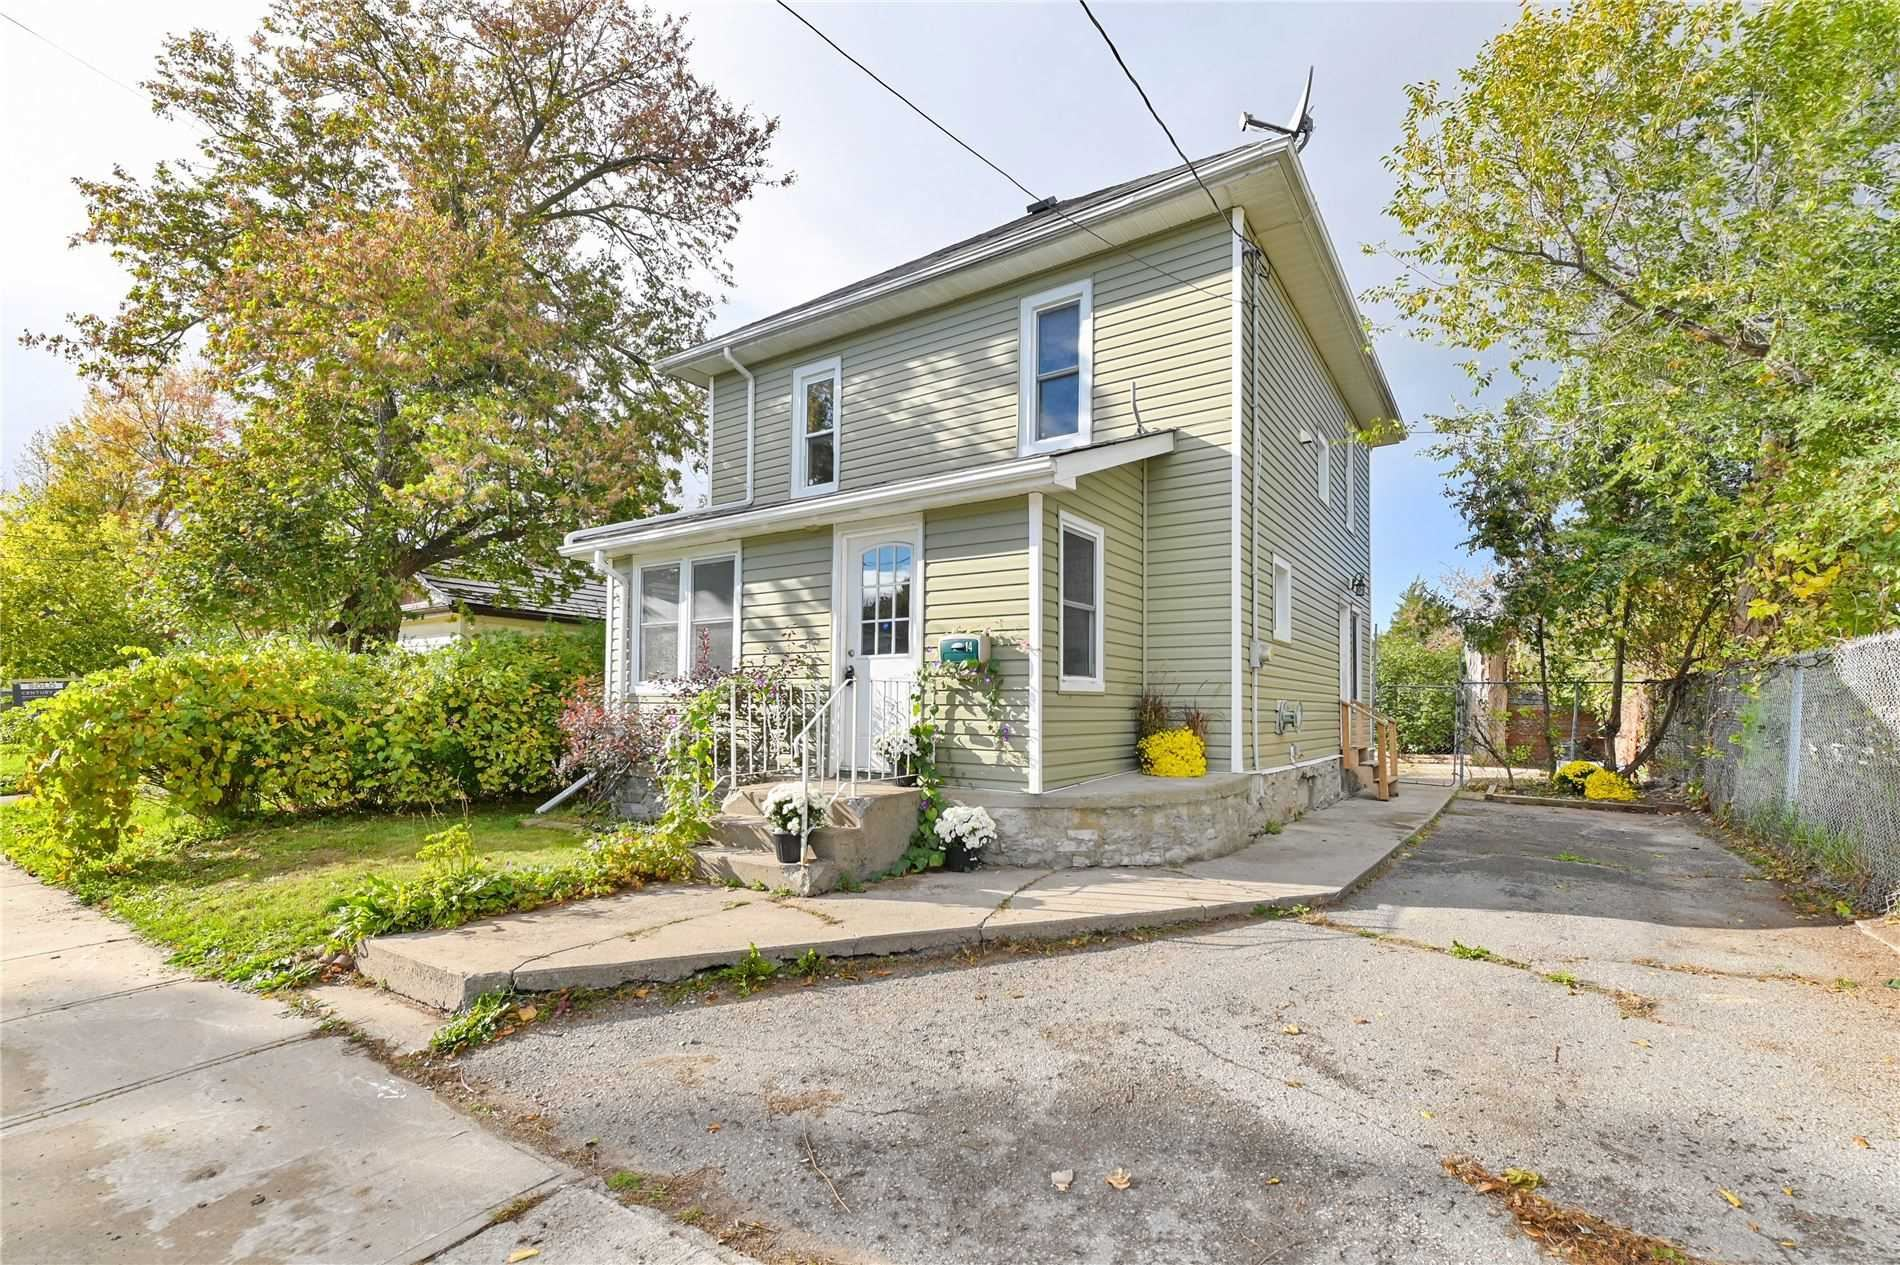 14  Sillers Ave, Quinte West, ON K8V 1X6 - MLS#: X5407220